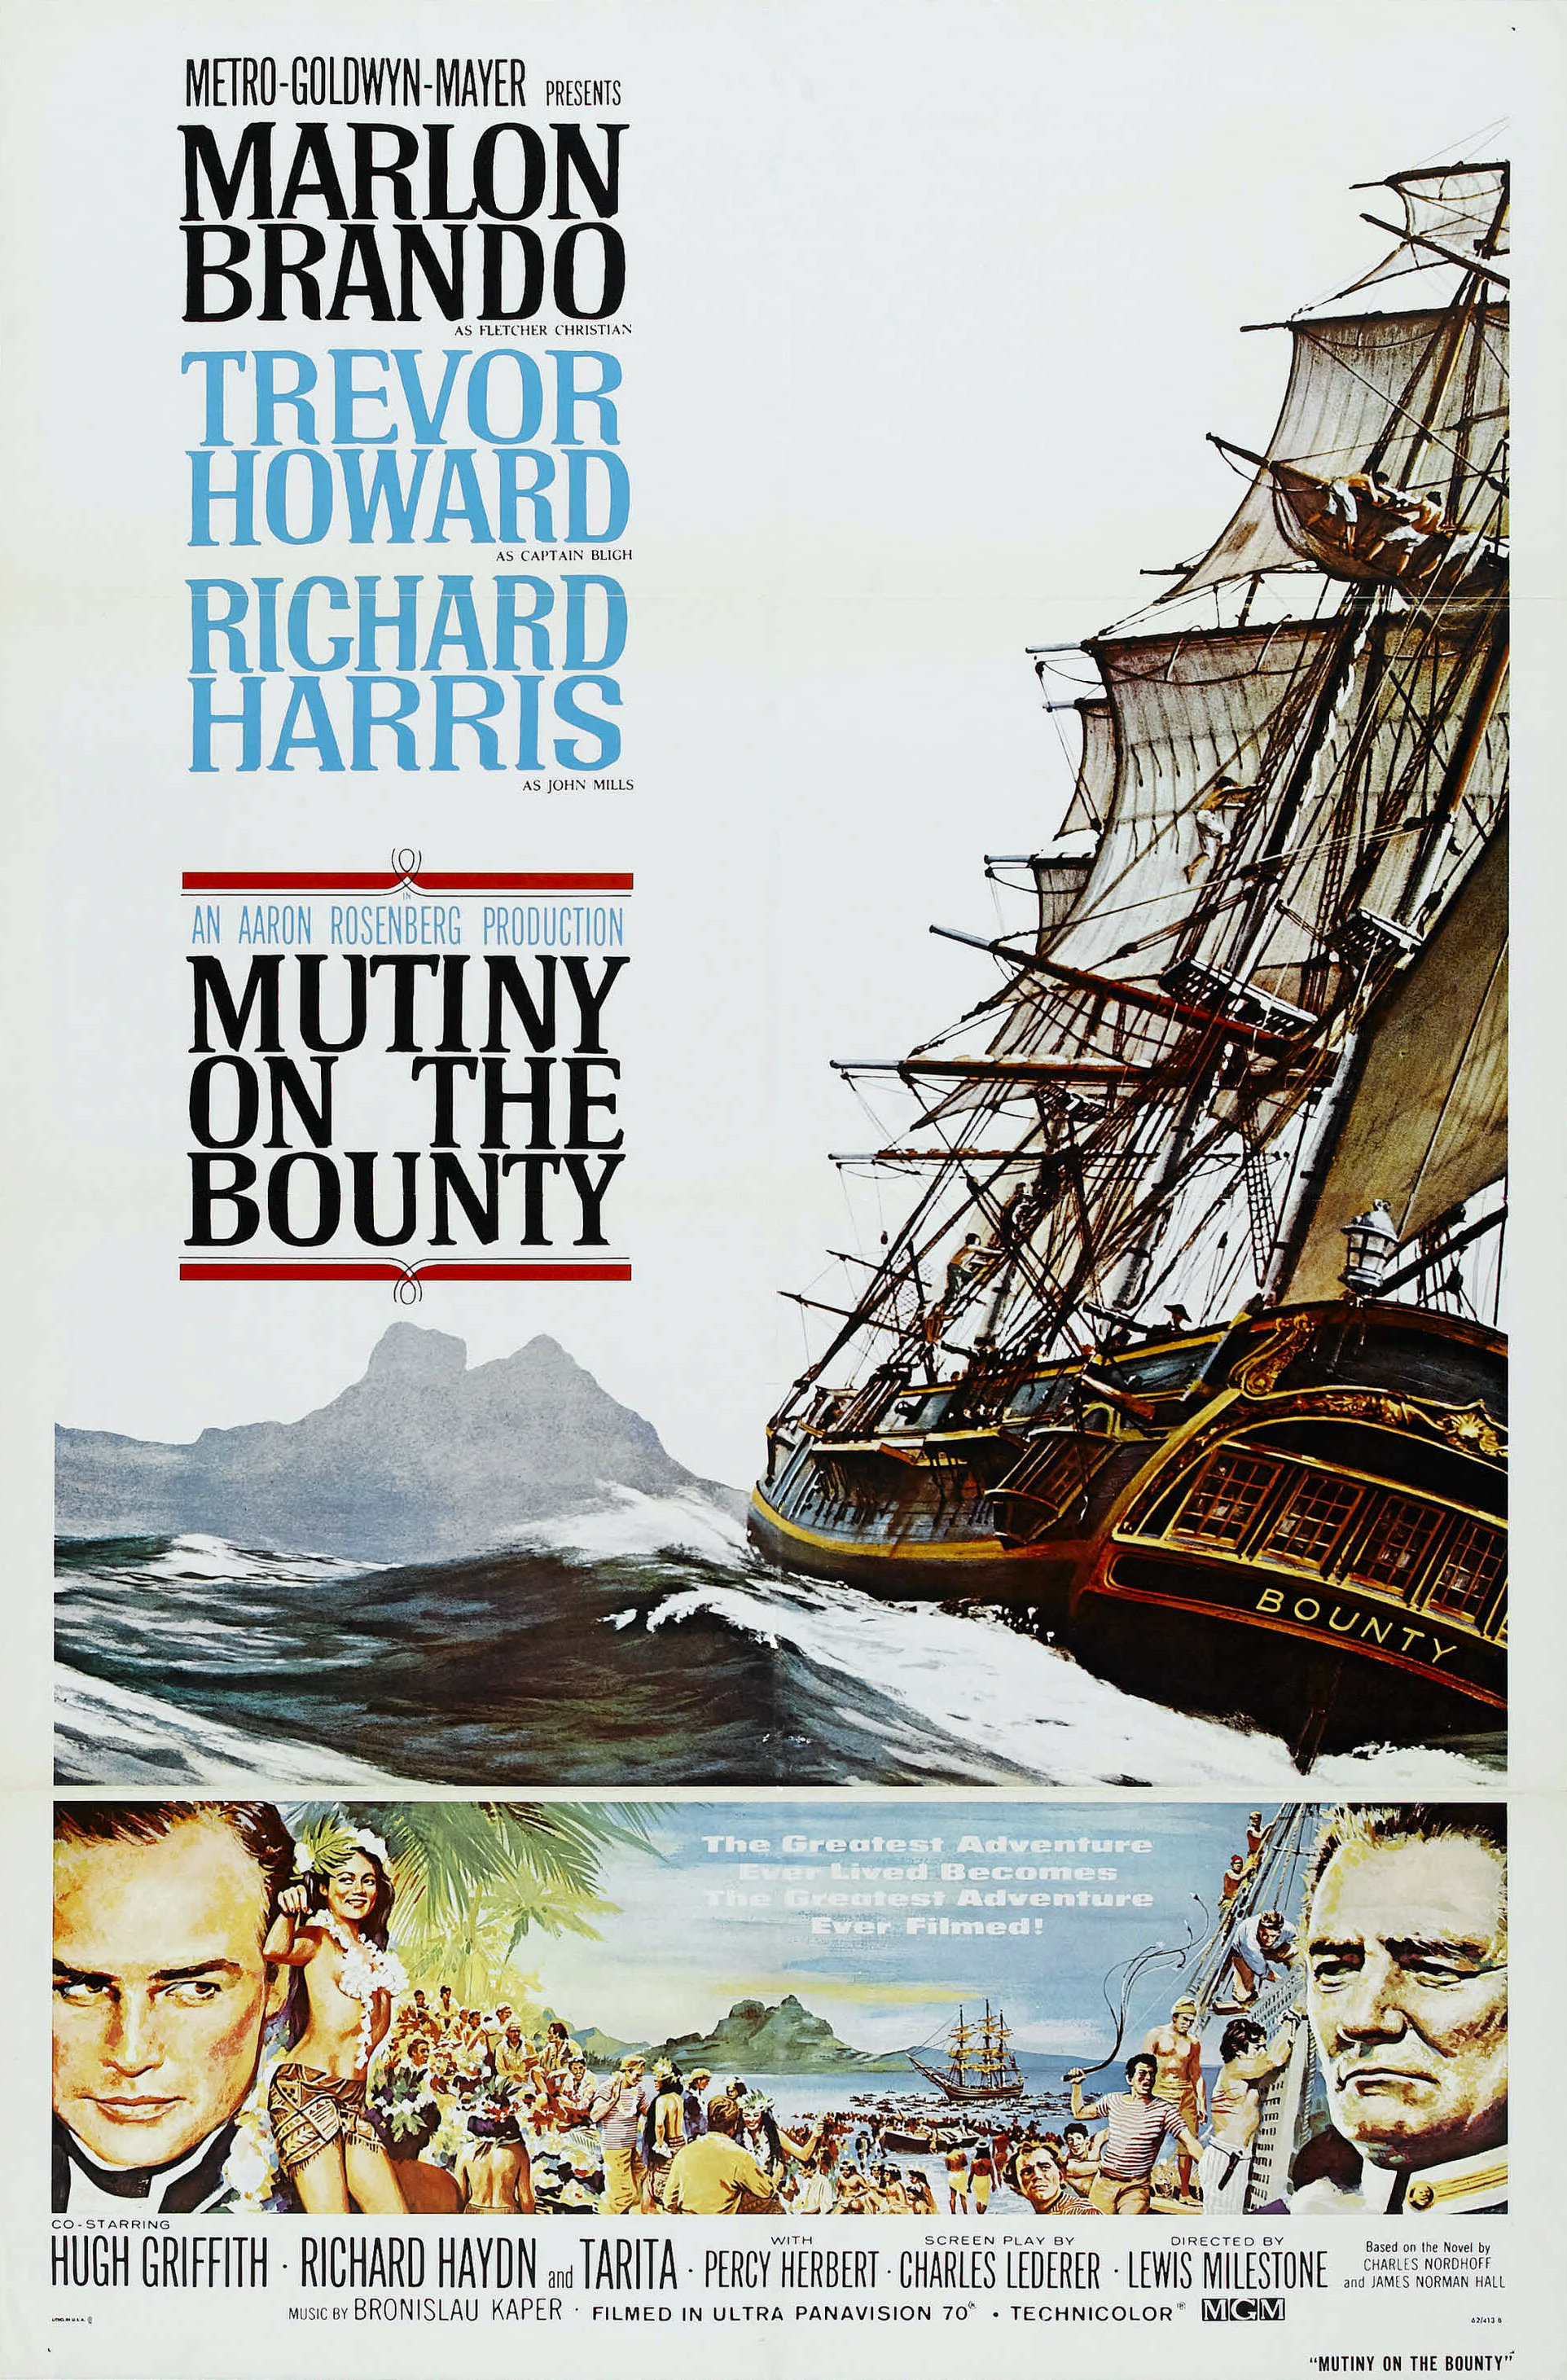 Mutiny on the Bounty (1962 film) - Wikipedia